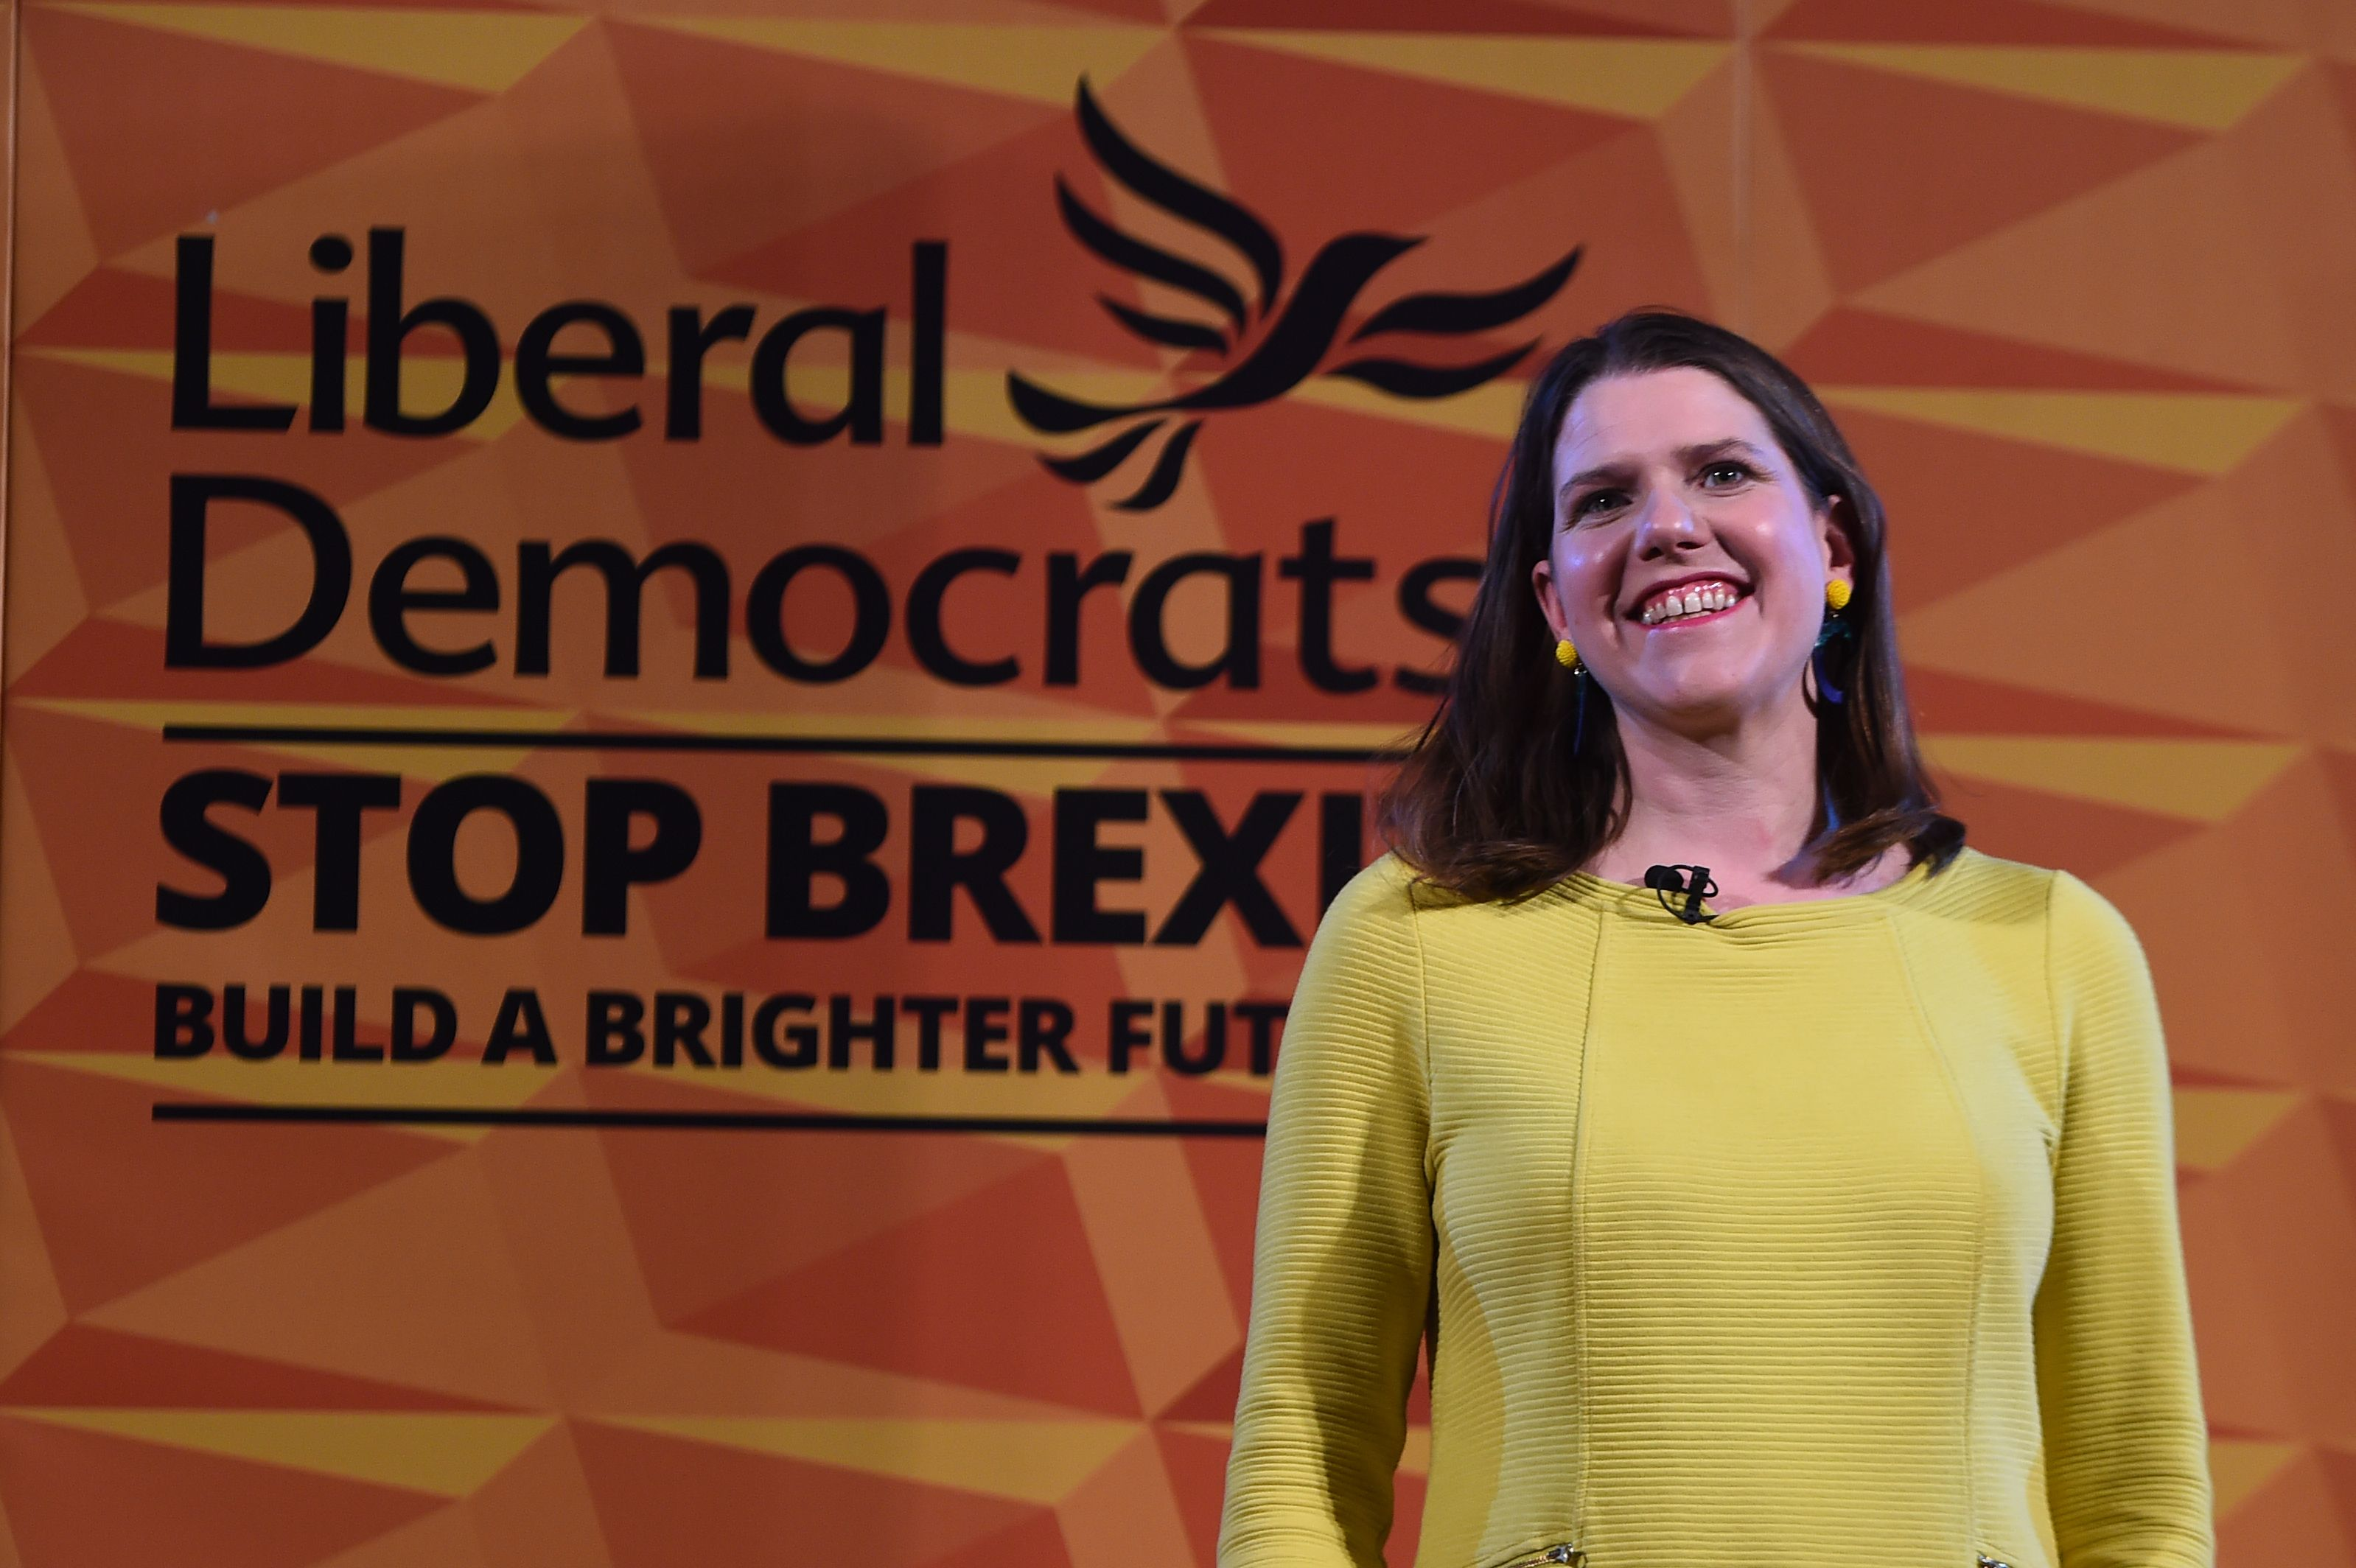 Liberal Democrats leader Jo Swinson distanced herself from the views of several Lib Dem candidates